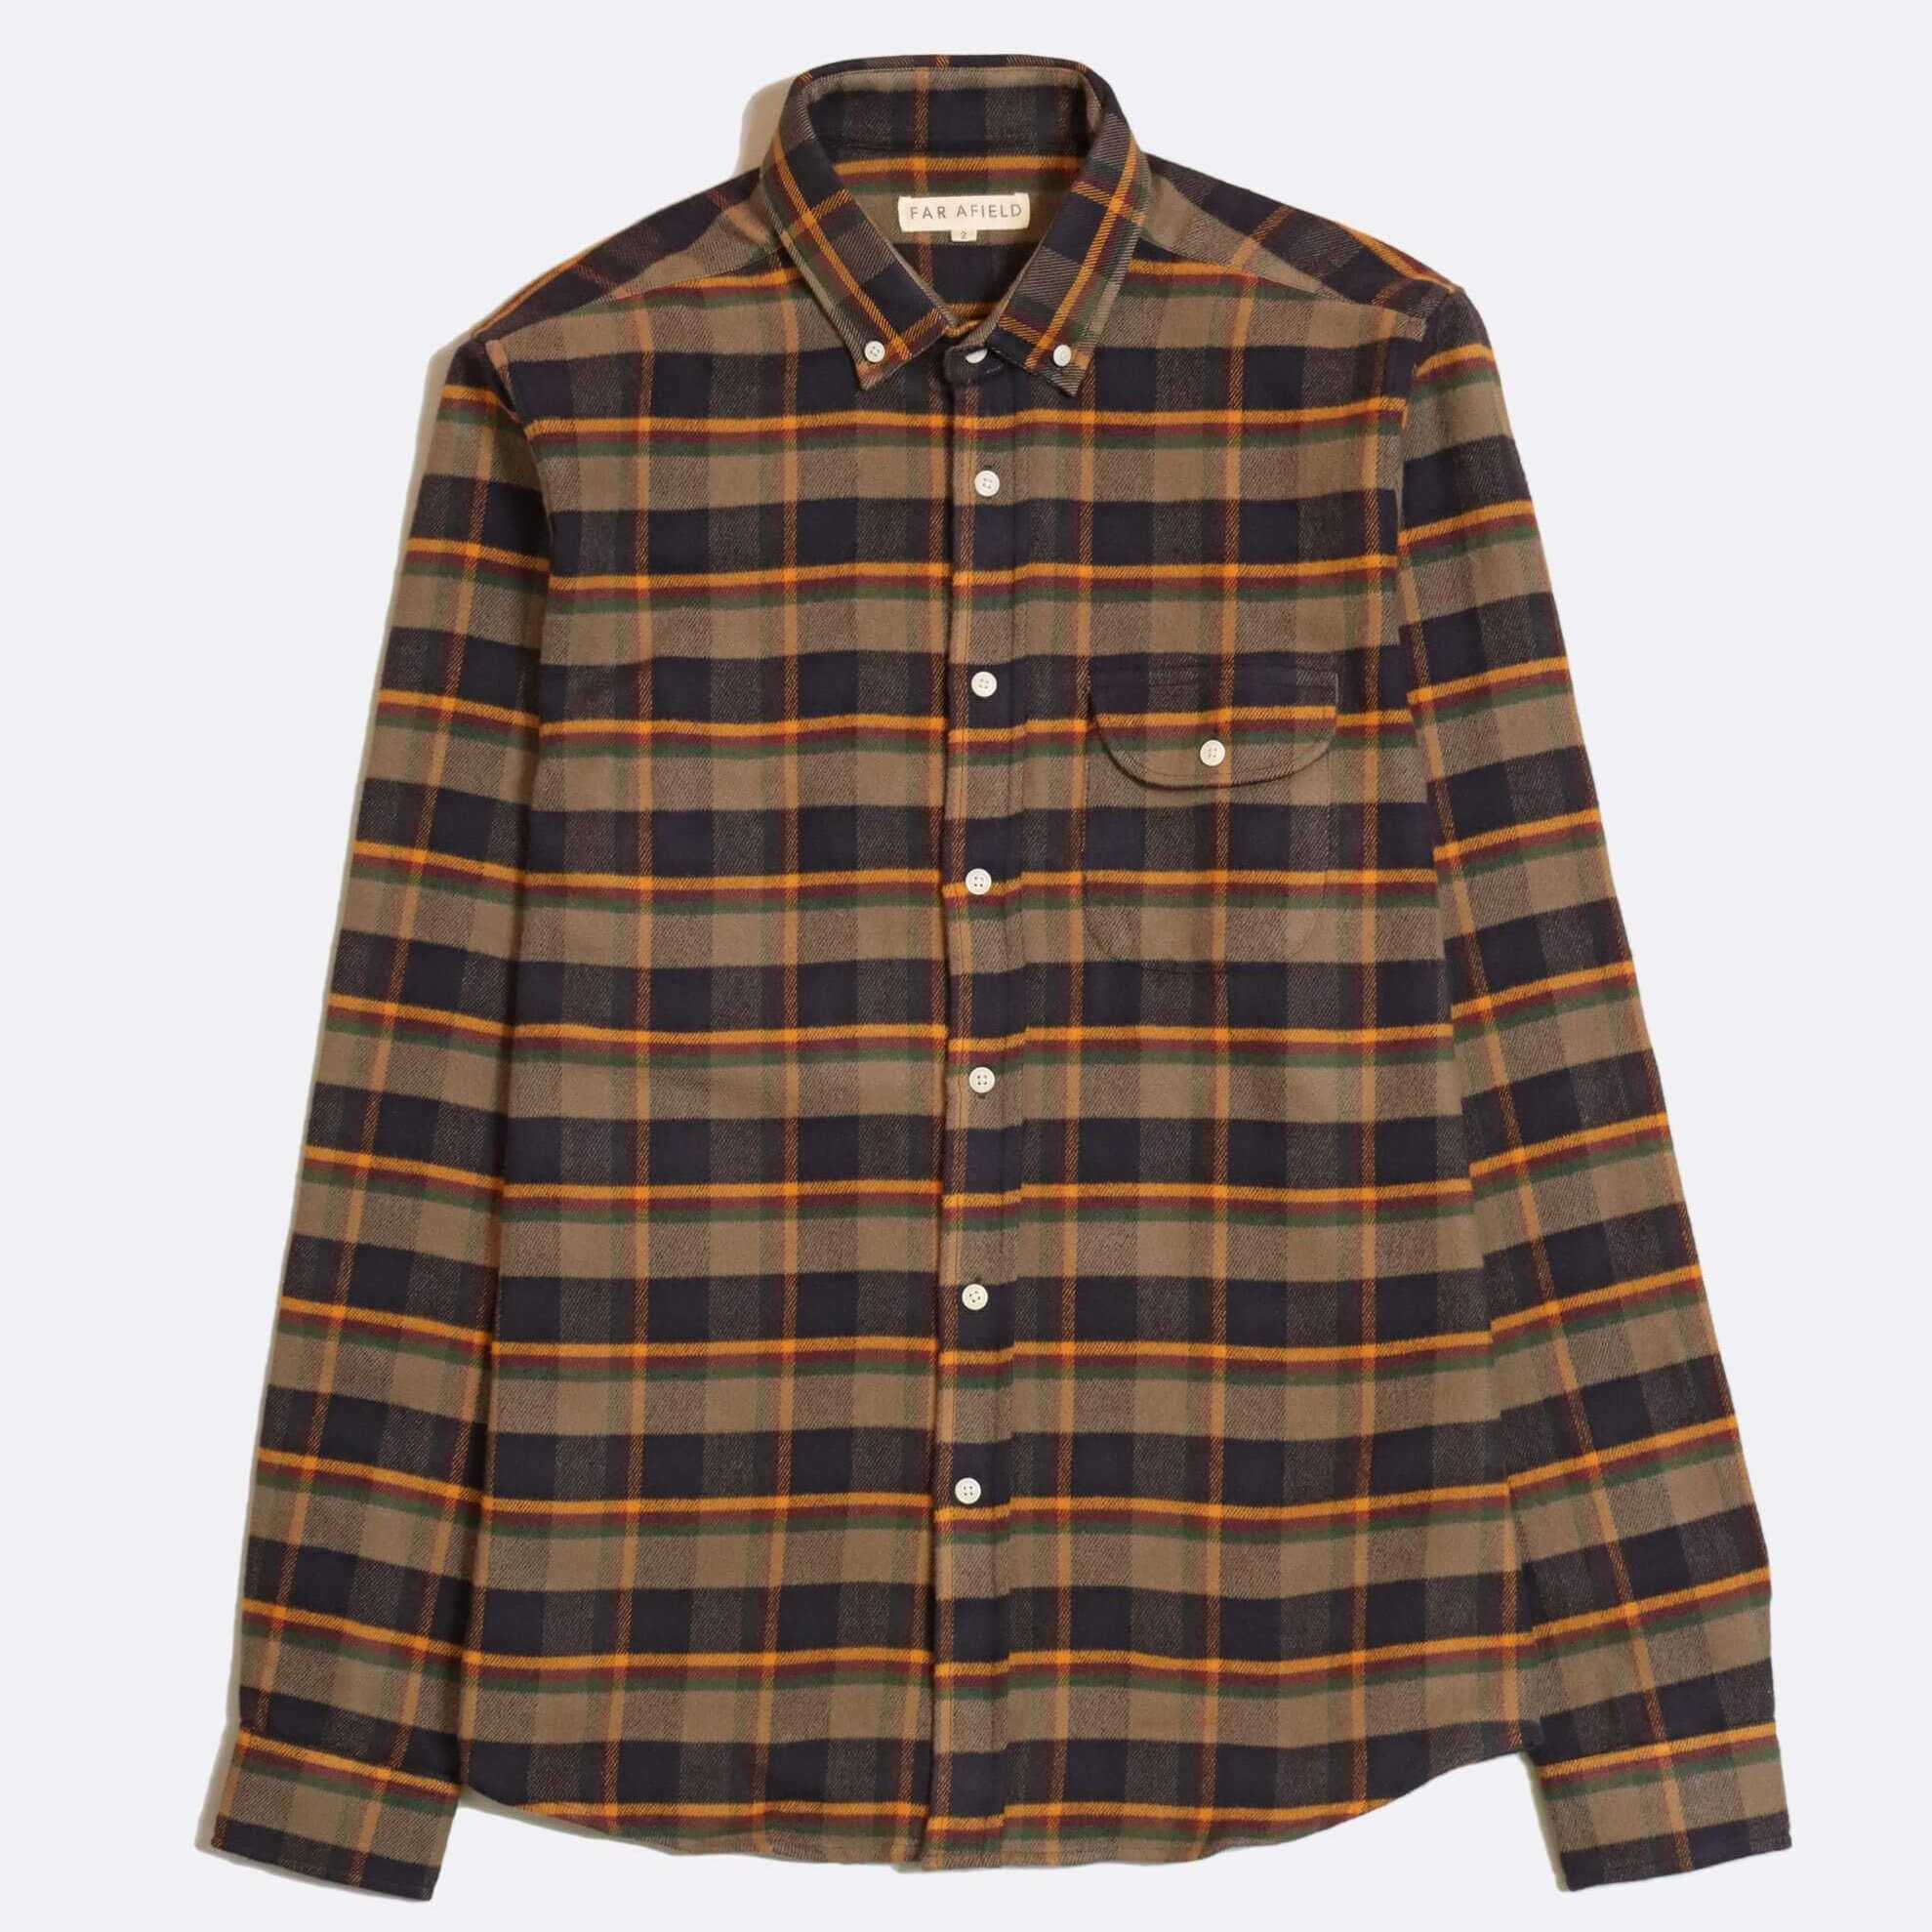 CAMISA FRANELA FAR AFIELD LARRY LONG SLEEVE DARK